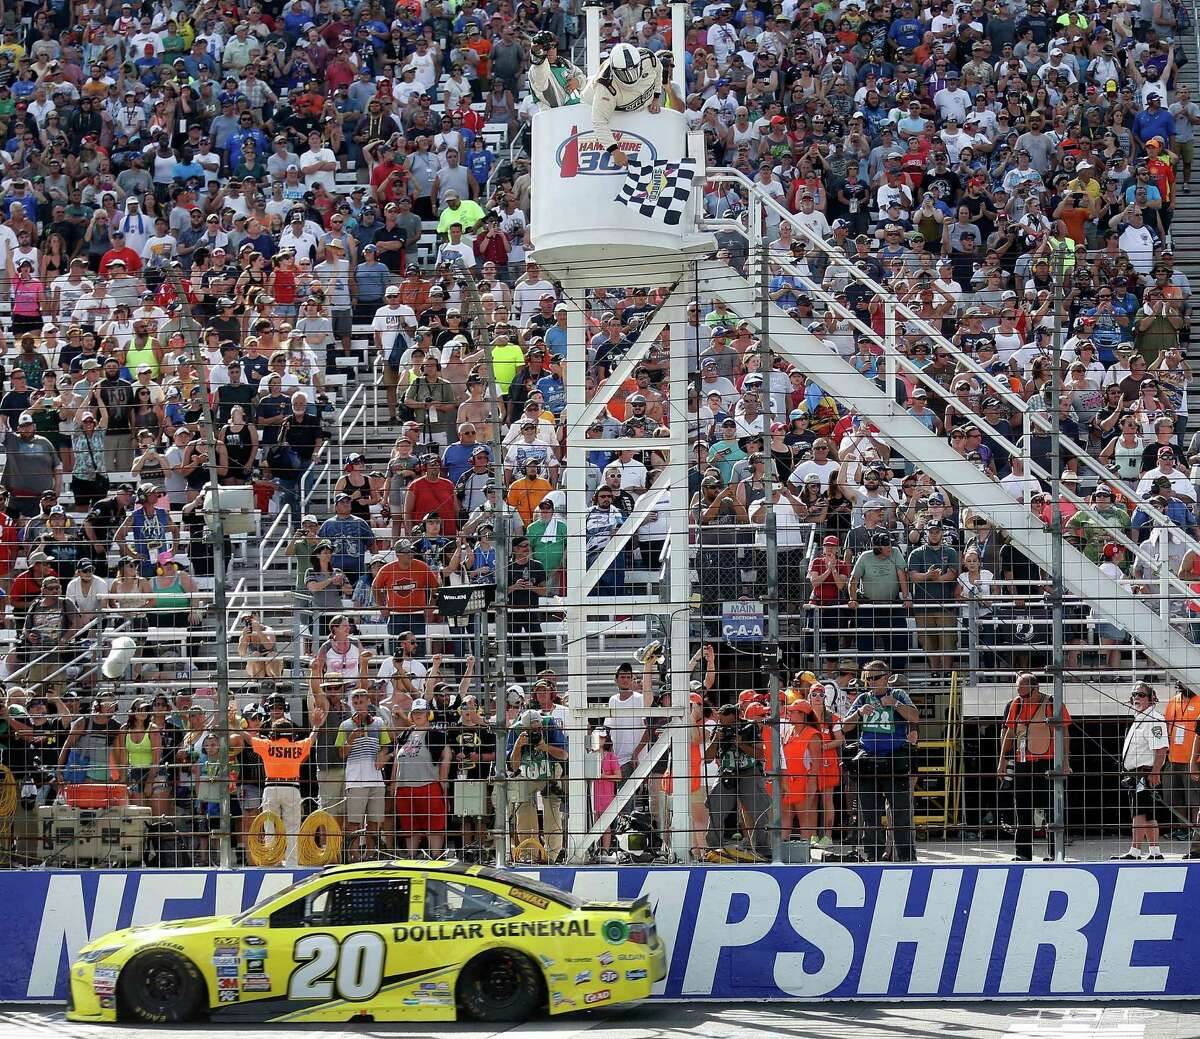 NASCAR driver Matt Kenseth gets the checkered flag to win the New Hampshire 301 auto race at New Hampshire Motor Speedway Sunday, July 17, 2016, in Loudon, N.H. (AP Photo/Jim Cole) ORG XMIT: NHJC110